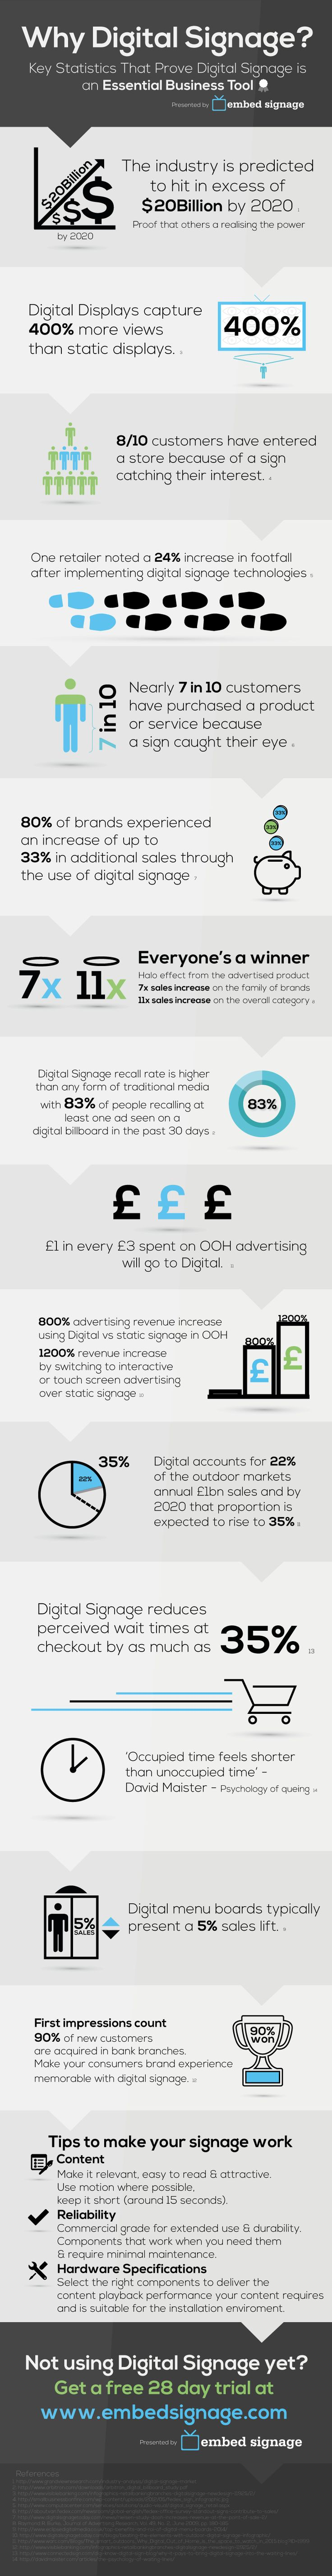 Great #digitalsignage stats